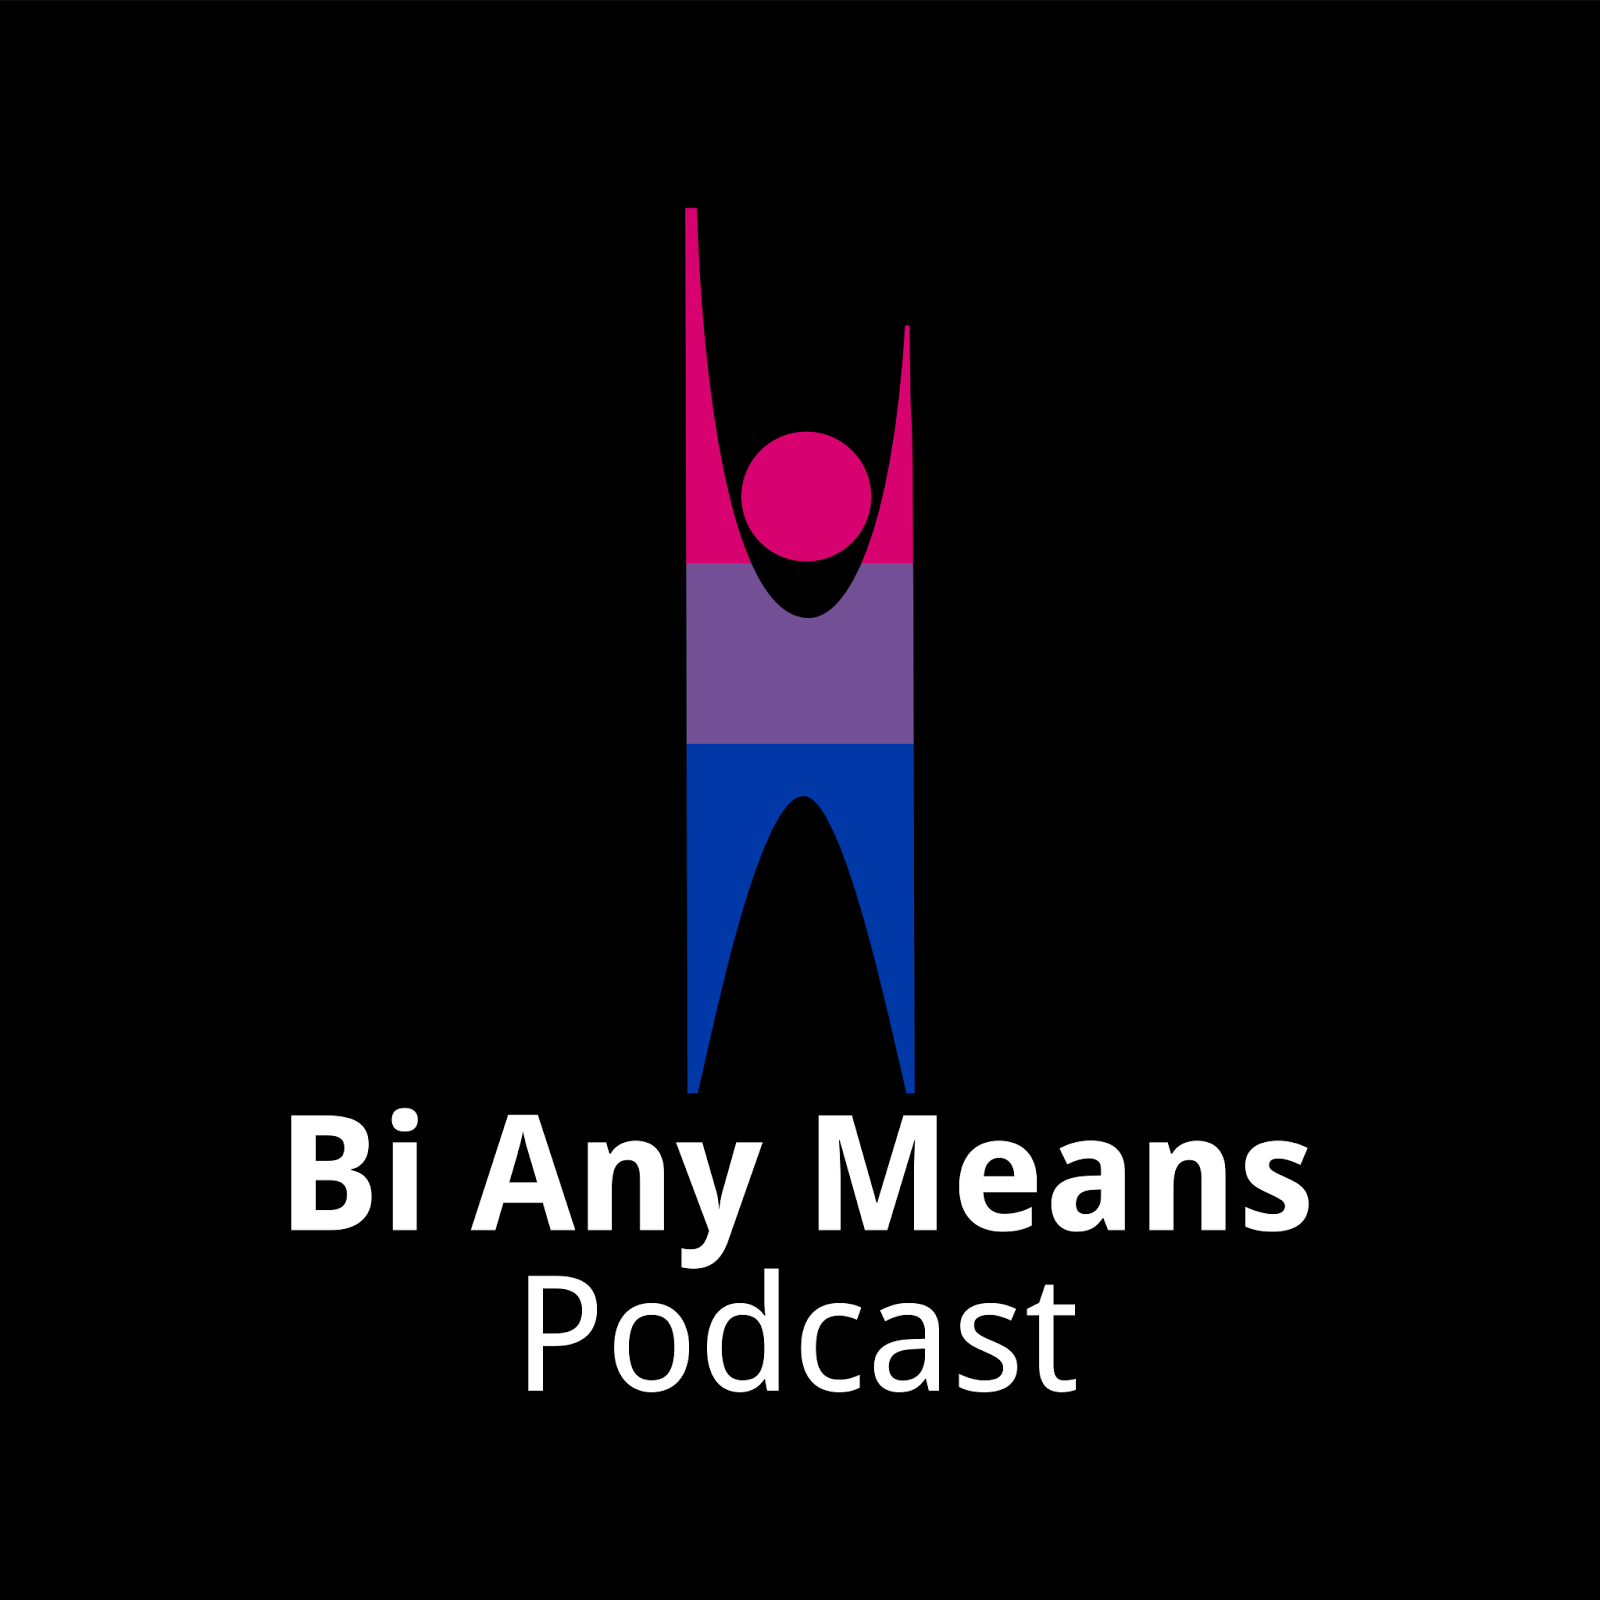 Bi Any Means Podcast